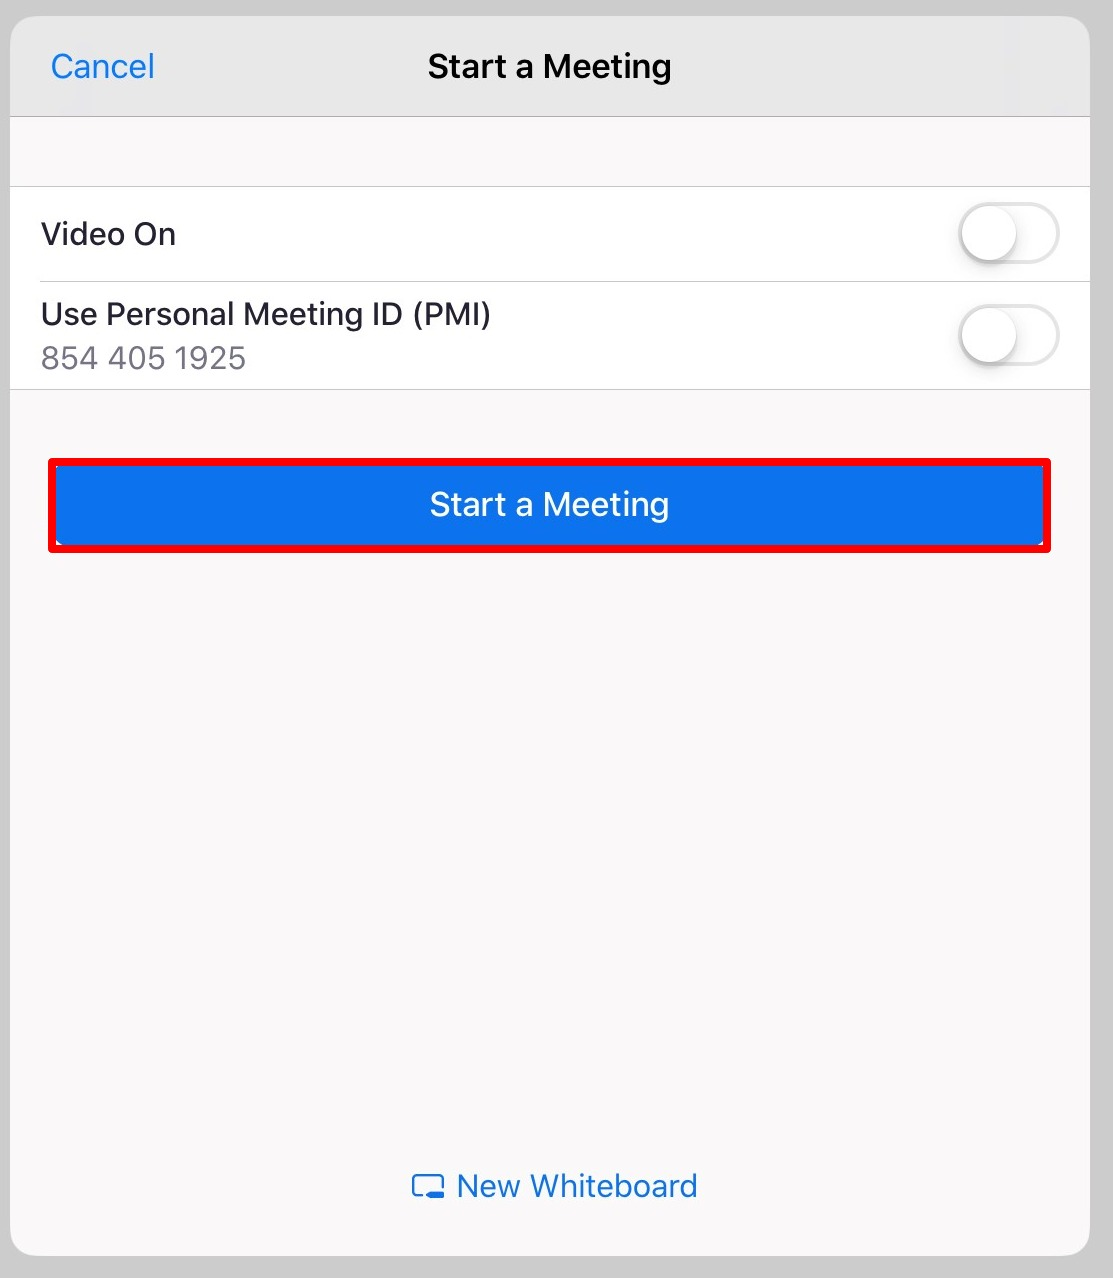 Video On and Use Personal ID options under Start a Meeting settings on iPad Zoom app